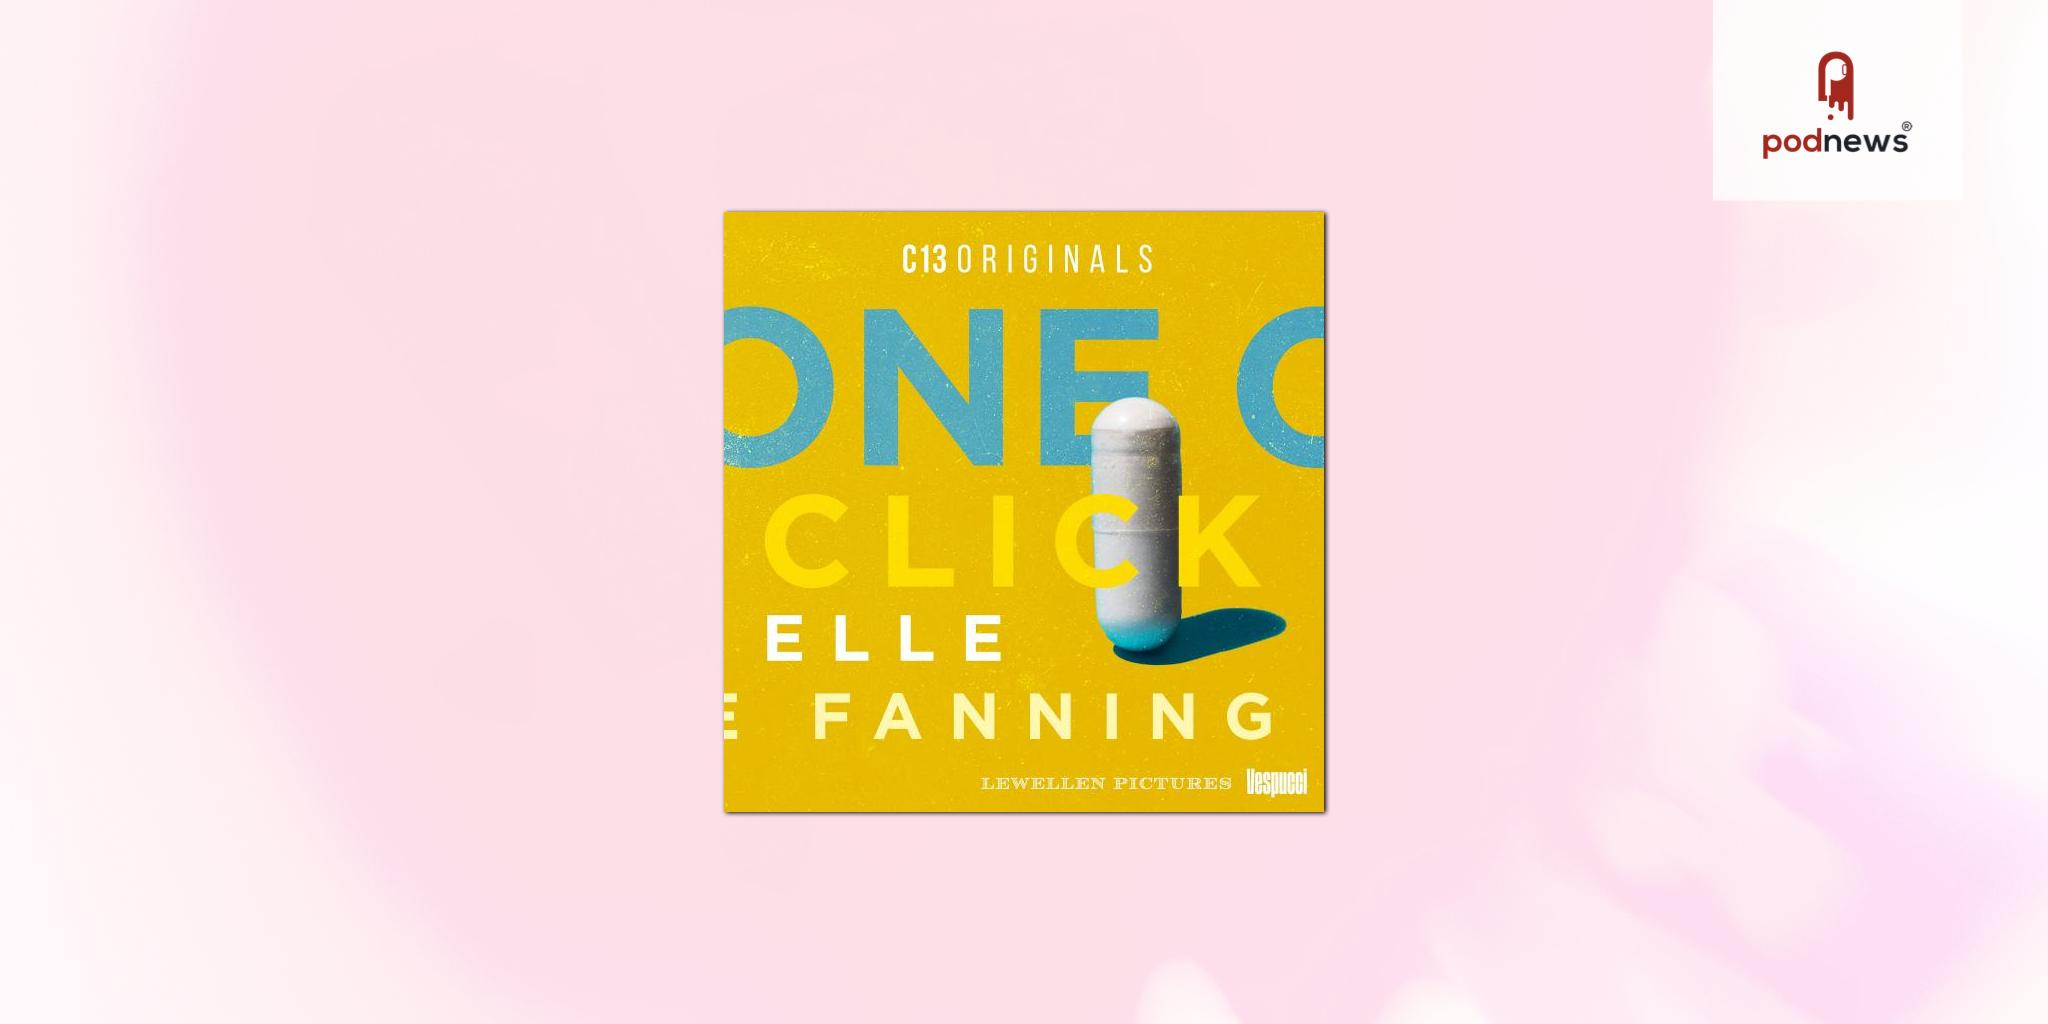 C13Originals and Vespucci Partner with Actress Elle Fanning to Launch One Click Documentary Podcast